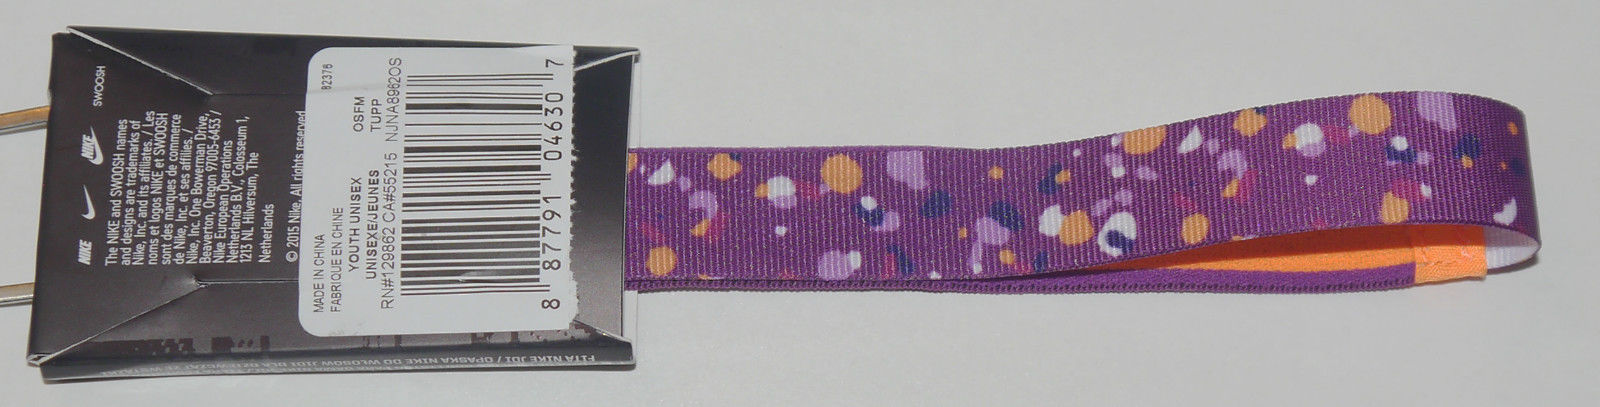 Nike Youth Girl's JDI Ribbon JUST DO IT Purple/Orange Polka Dot Headband